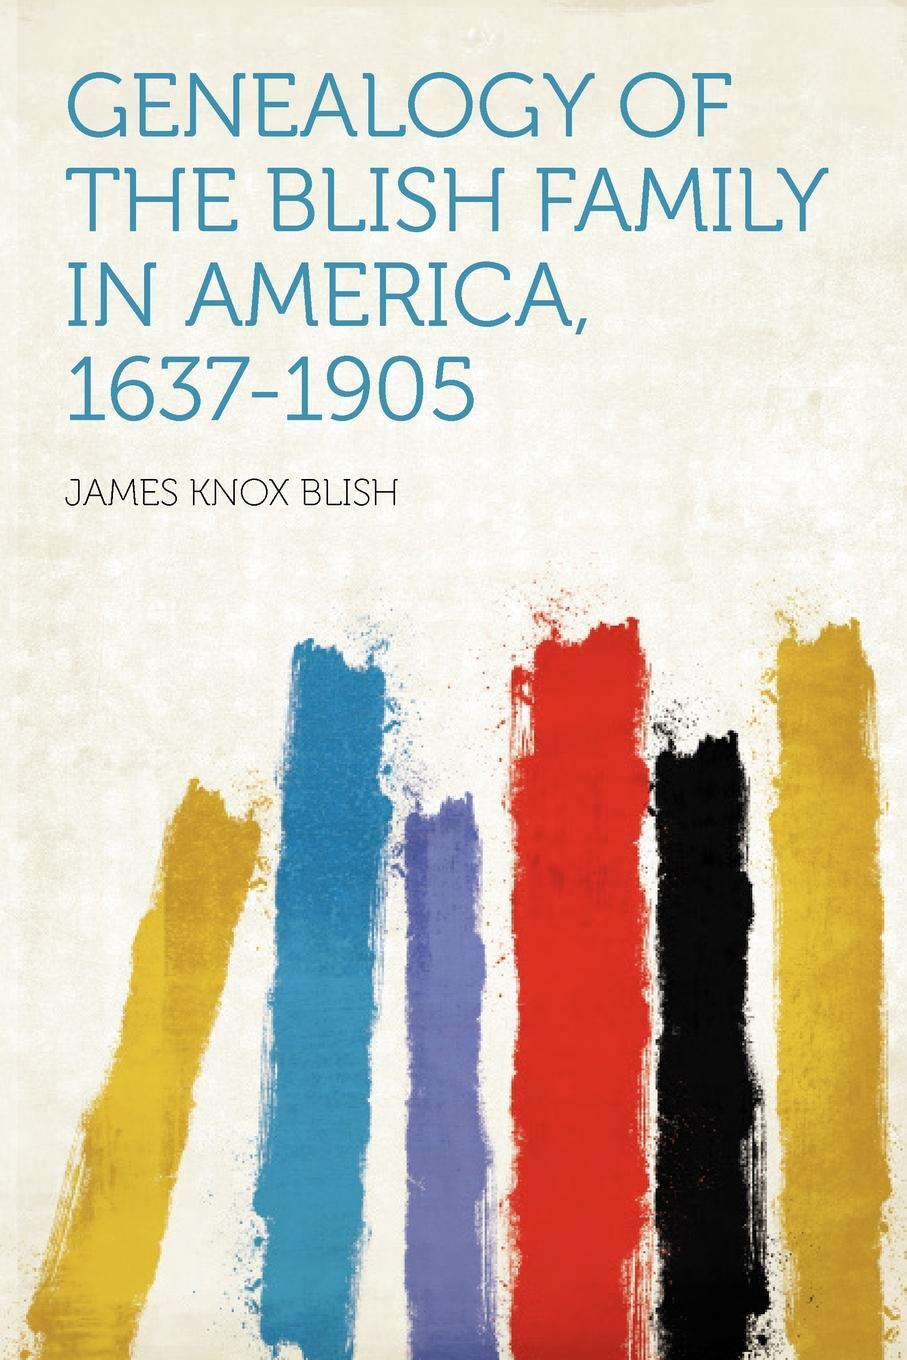 Genealogy of the Blish Family in America, 1637-1905.